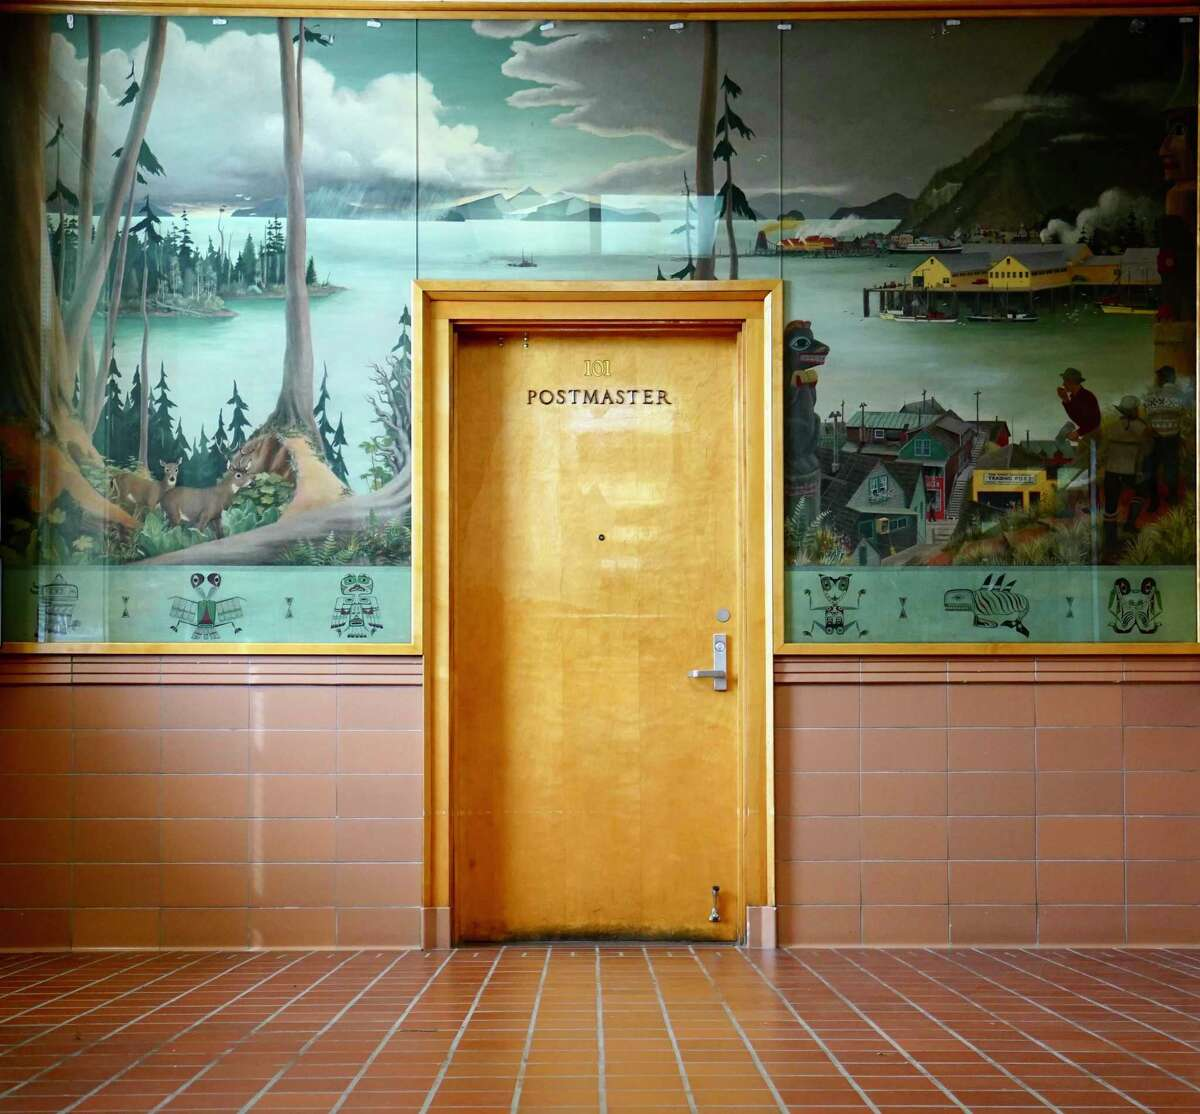 Post Office in Wrangell, Alaska, photographed by Heath Travels for the book